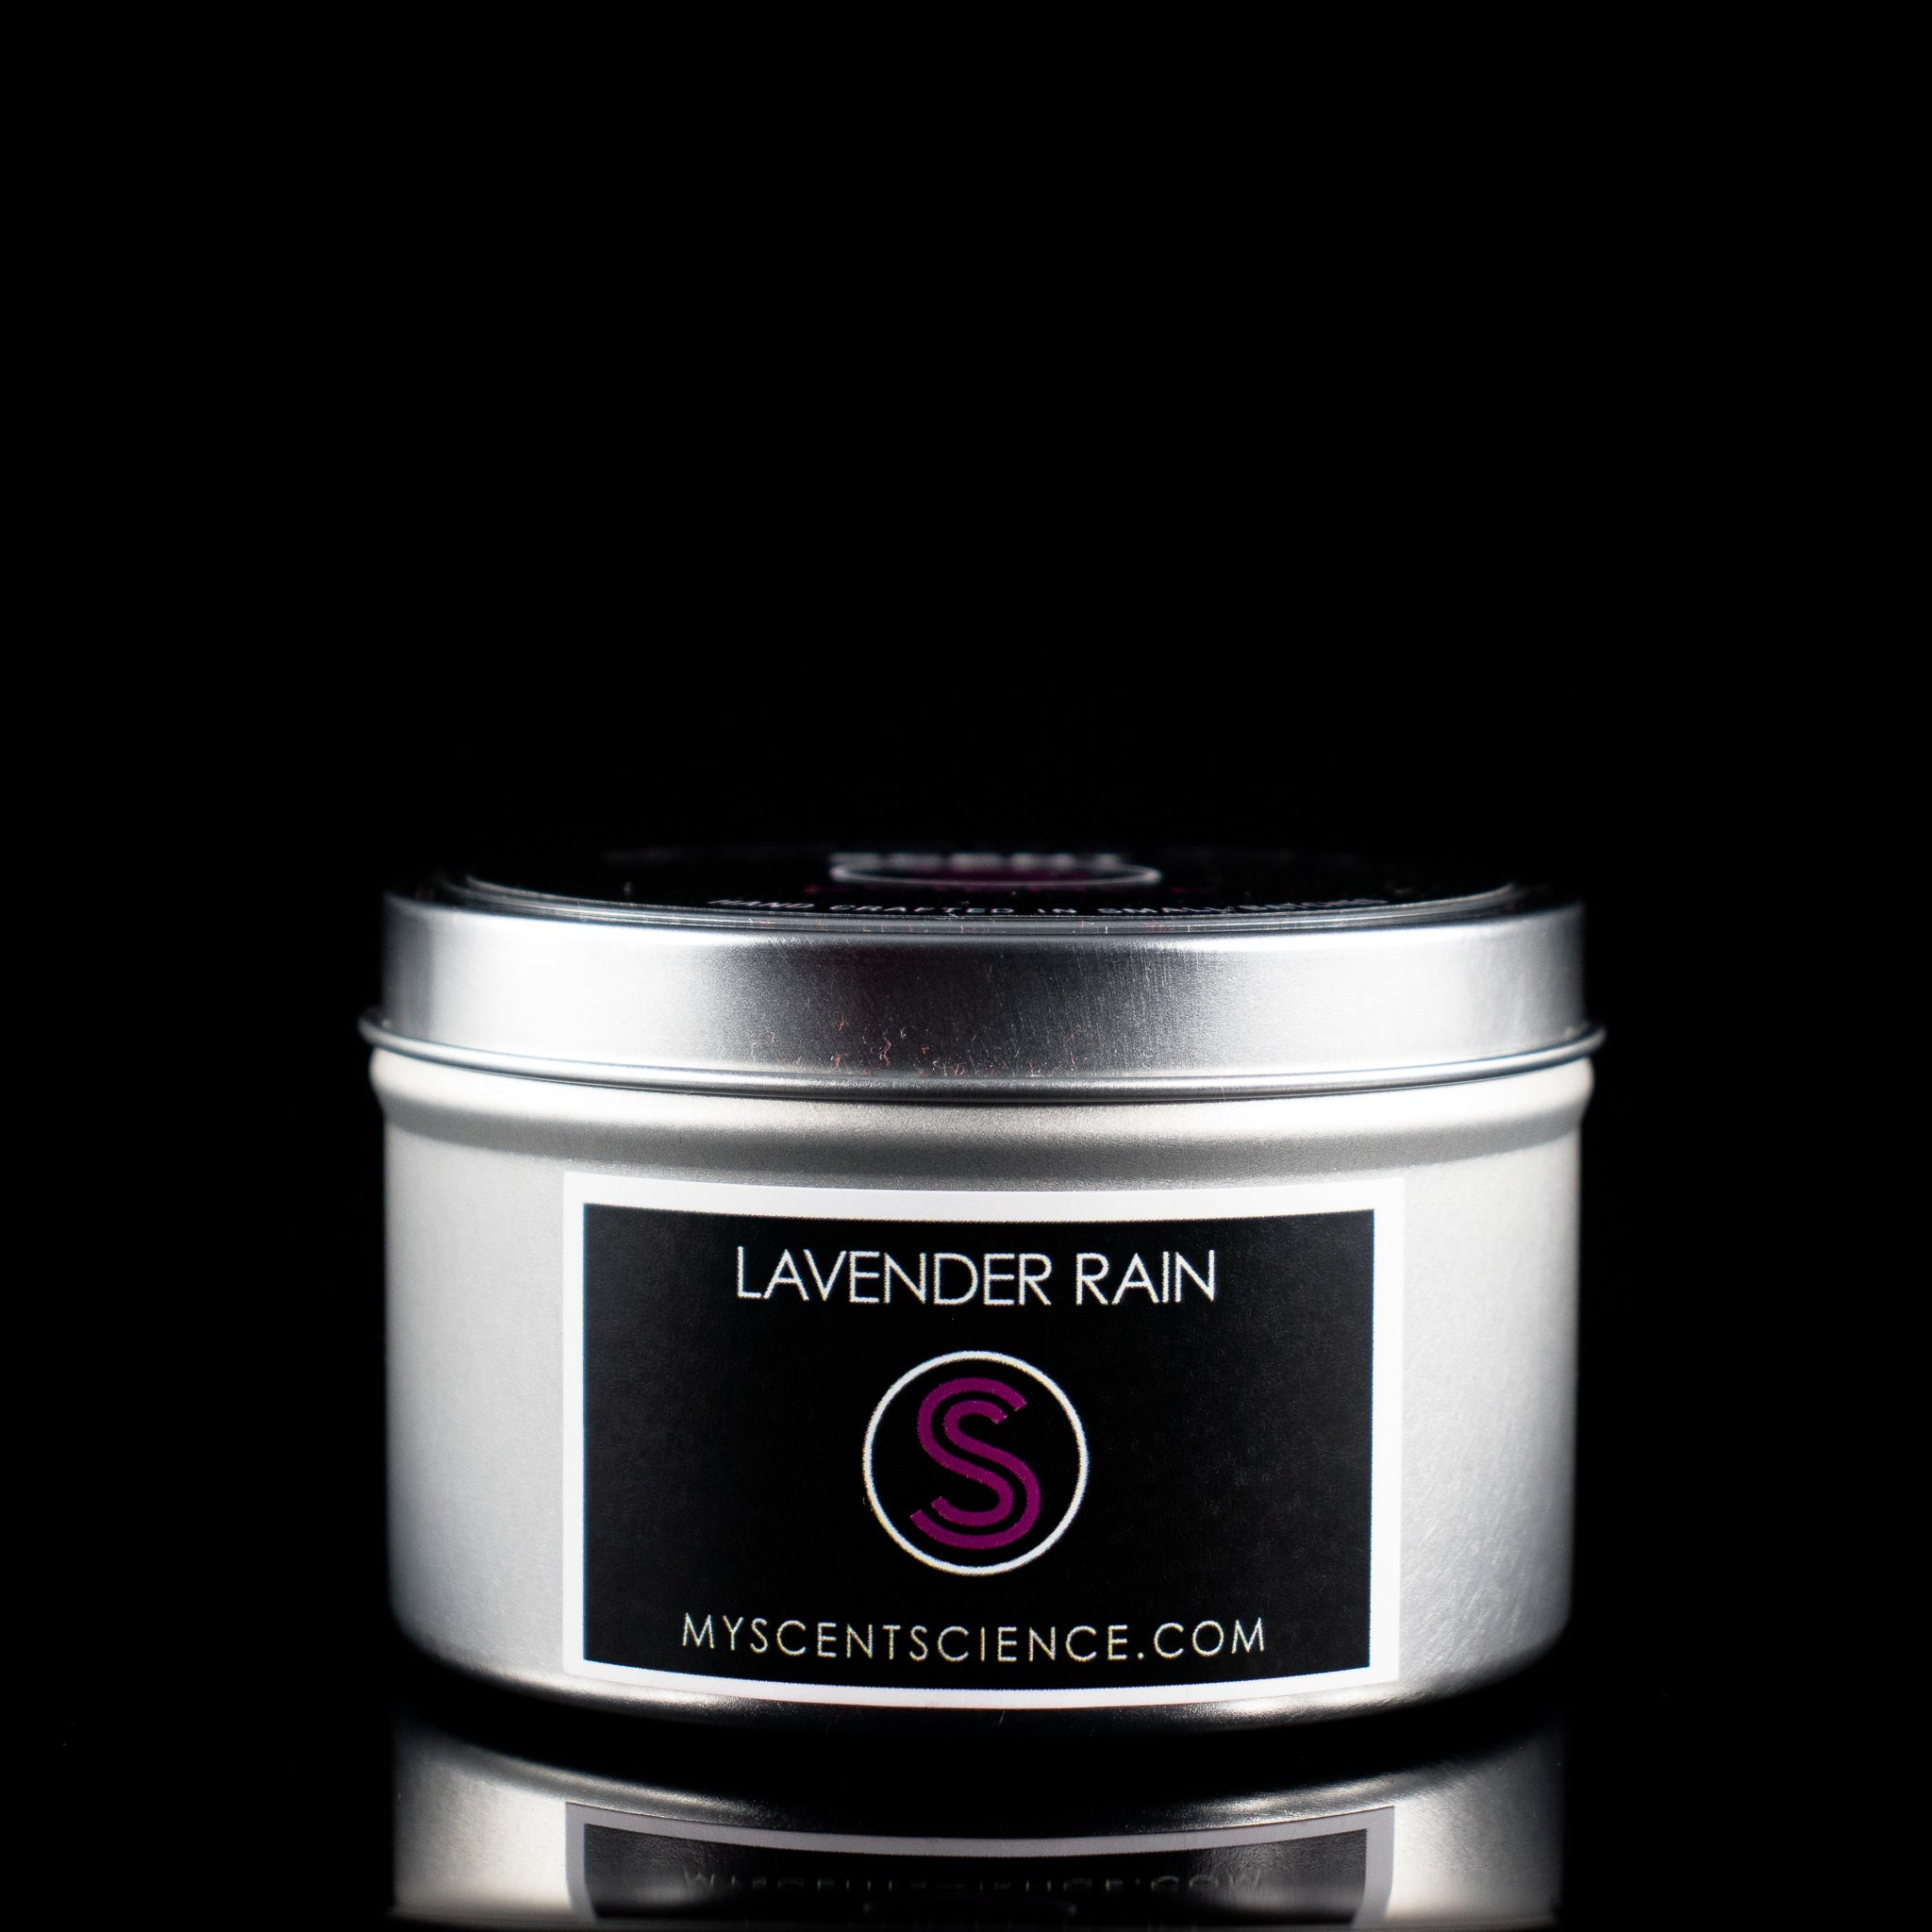 Lavender Rain Travel Tin